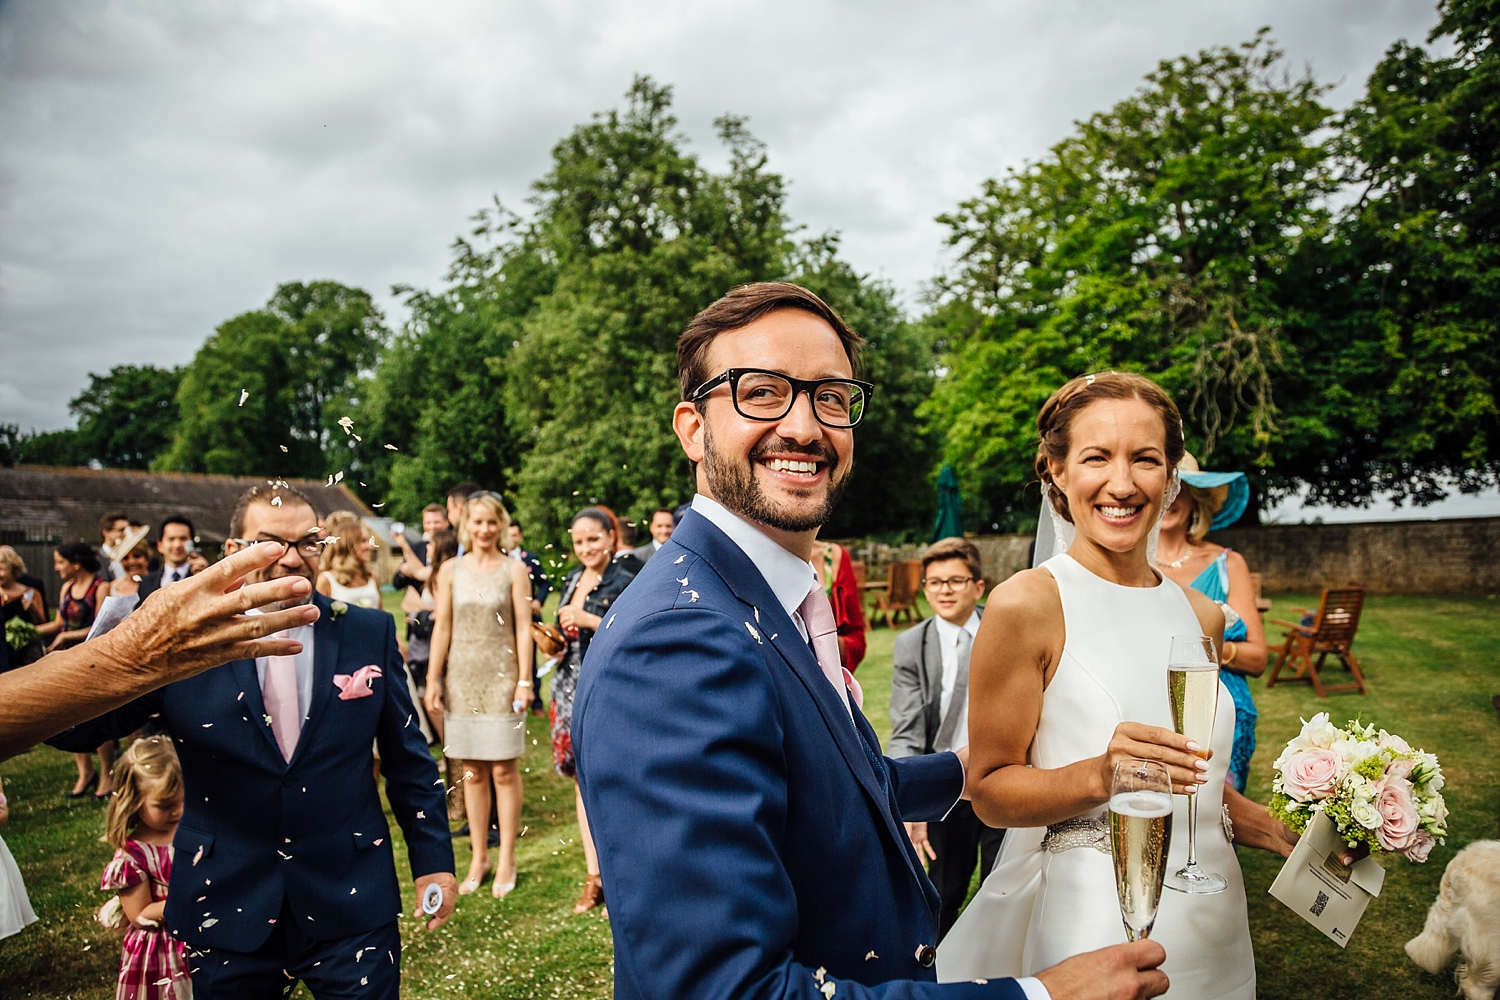 alexvictor-blog-natural-fun-relaxed-documentary-charlotte-jopling-wedding-photography-northamptonshire-home-garden-country-summer-34.jpg